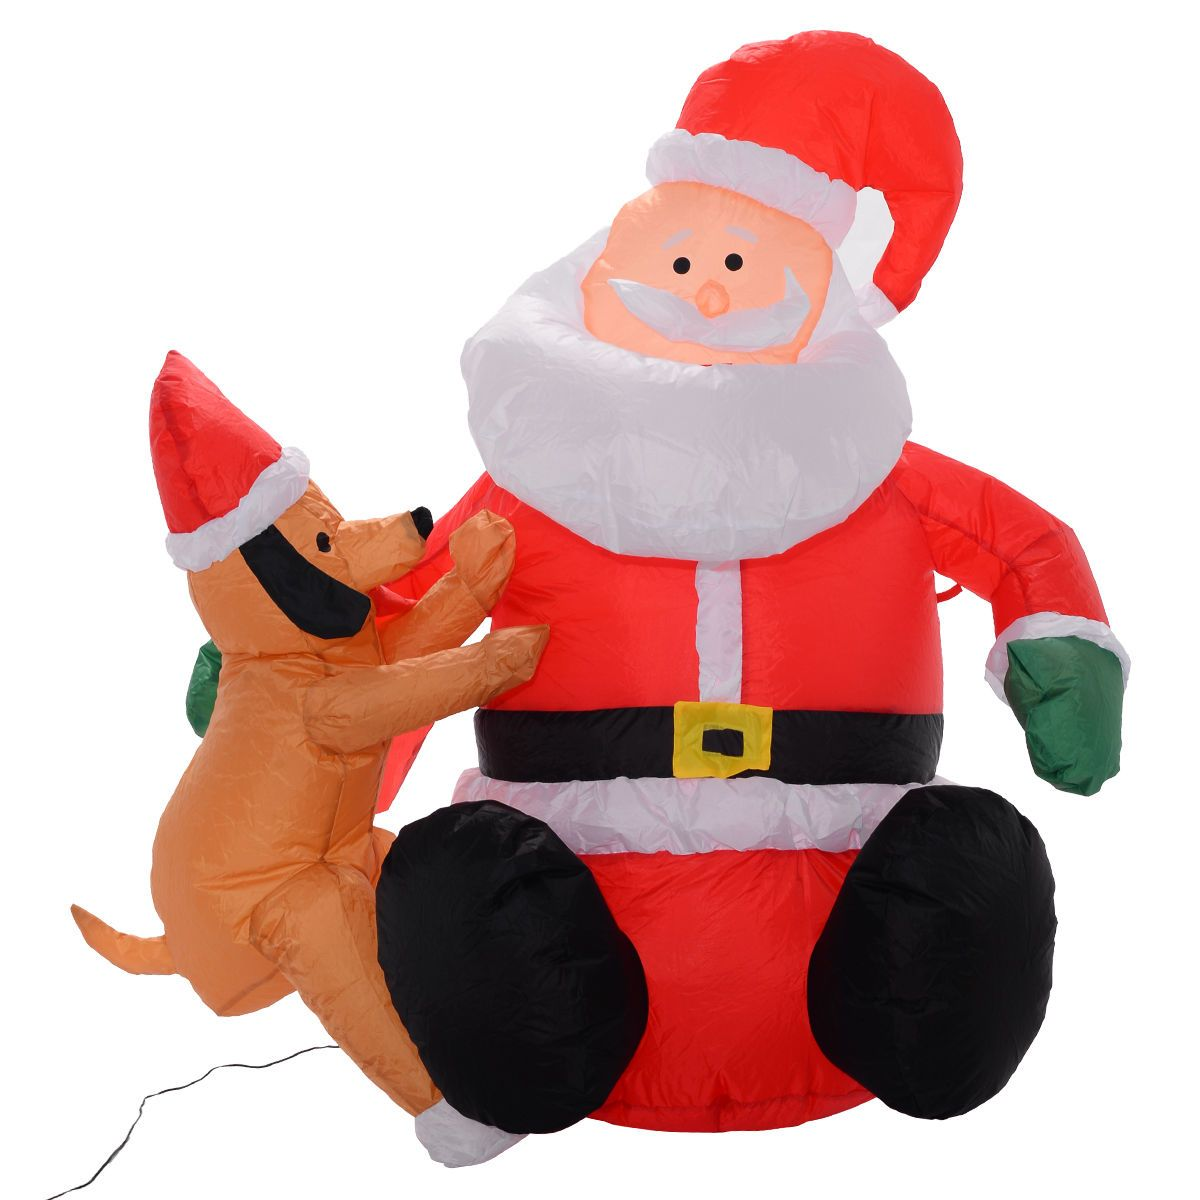 4Ft Airblown Inflatable Christmas Santa Claus Lighted Decor Lawn Yard Outdoor